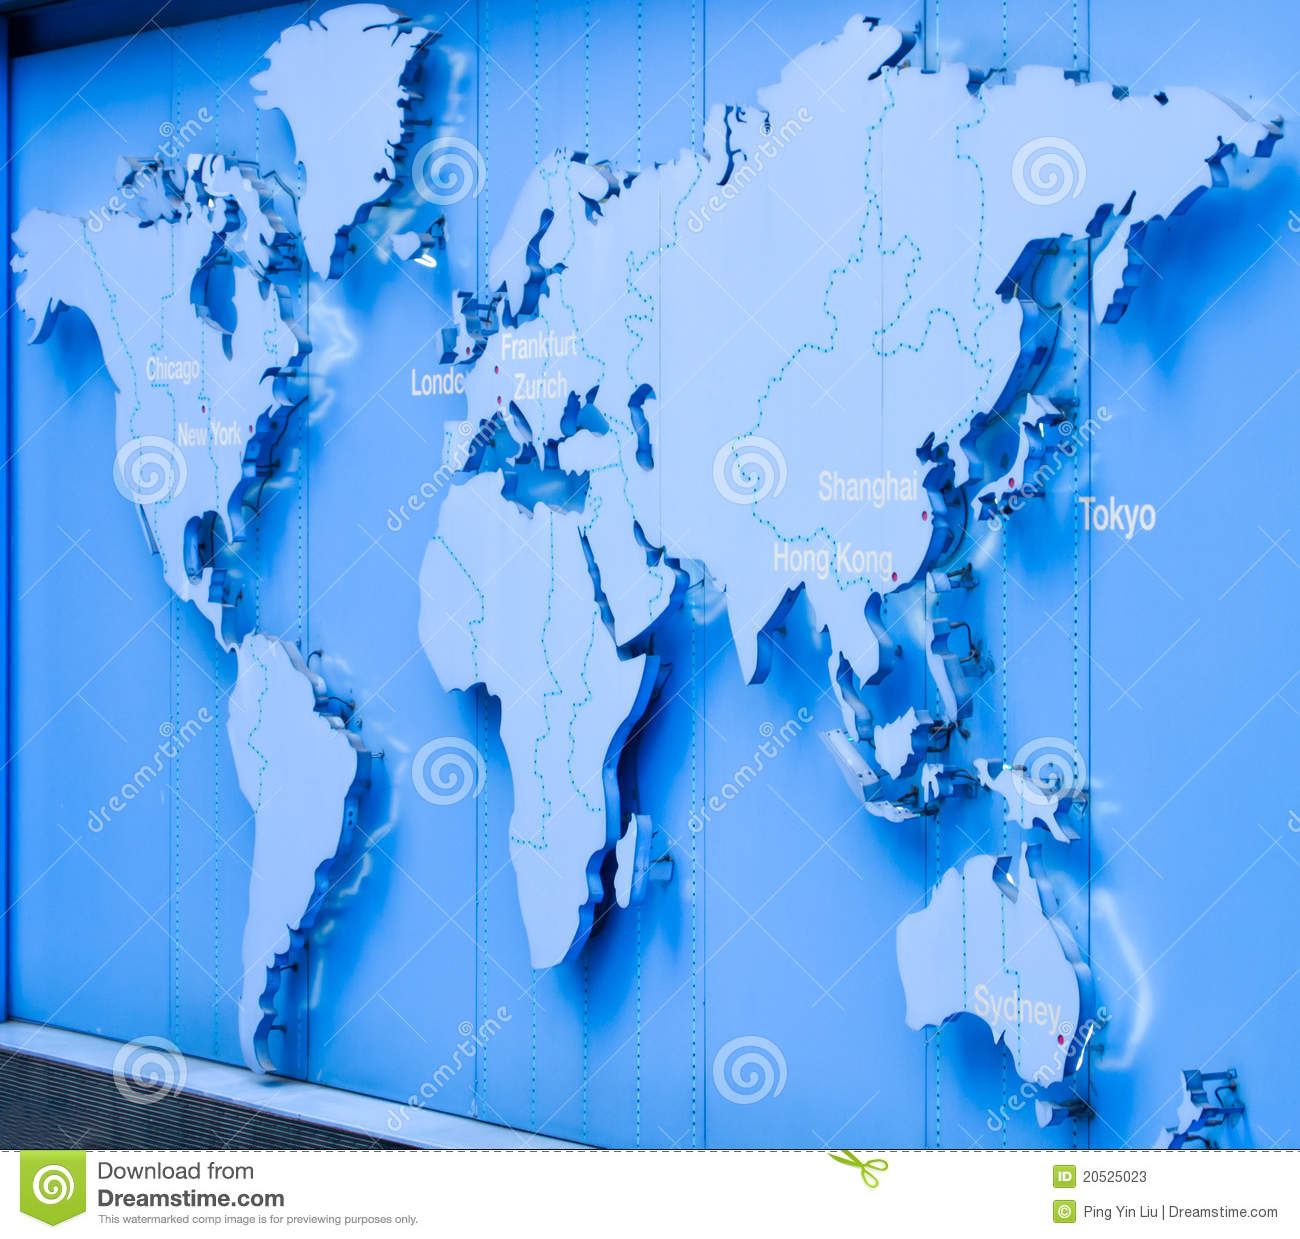 World Map Stock Image Image Of German Chicago China 20525023